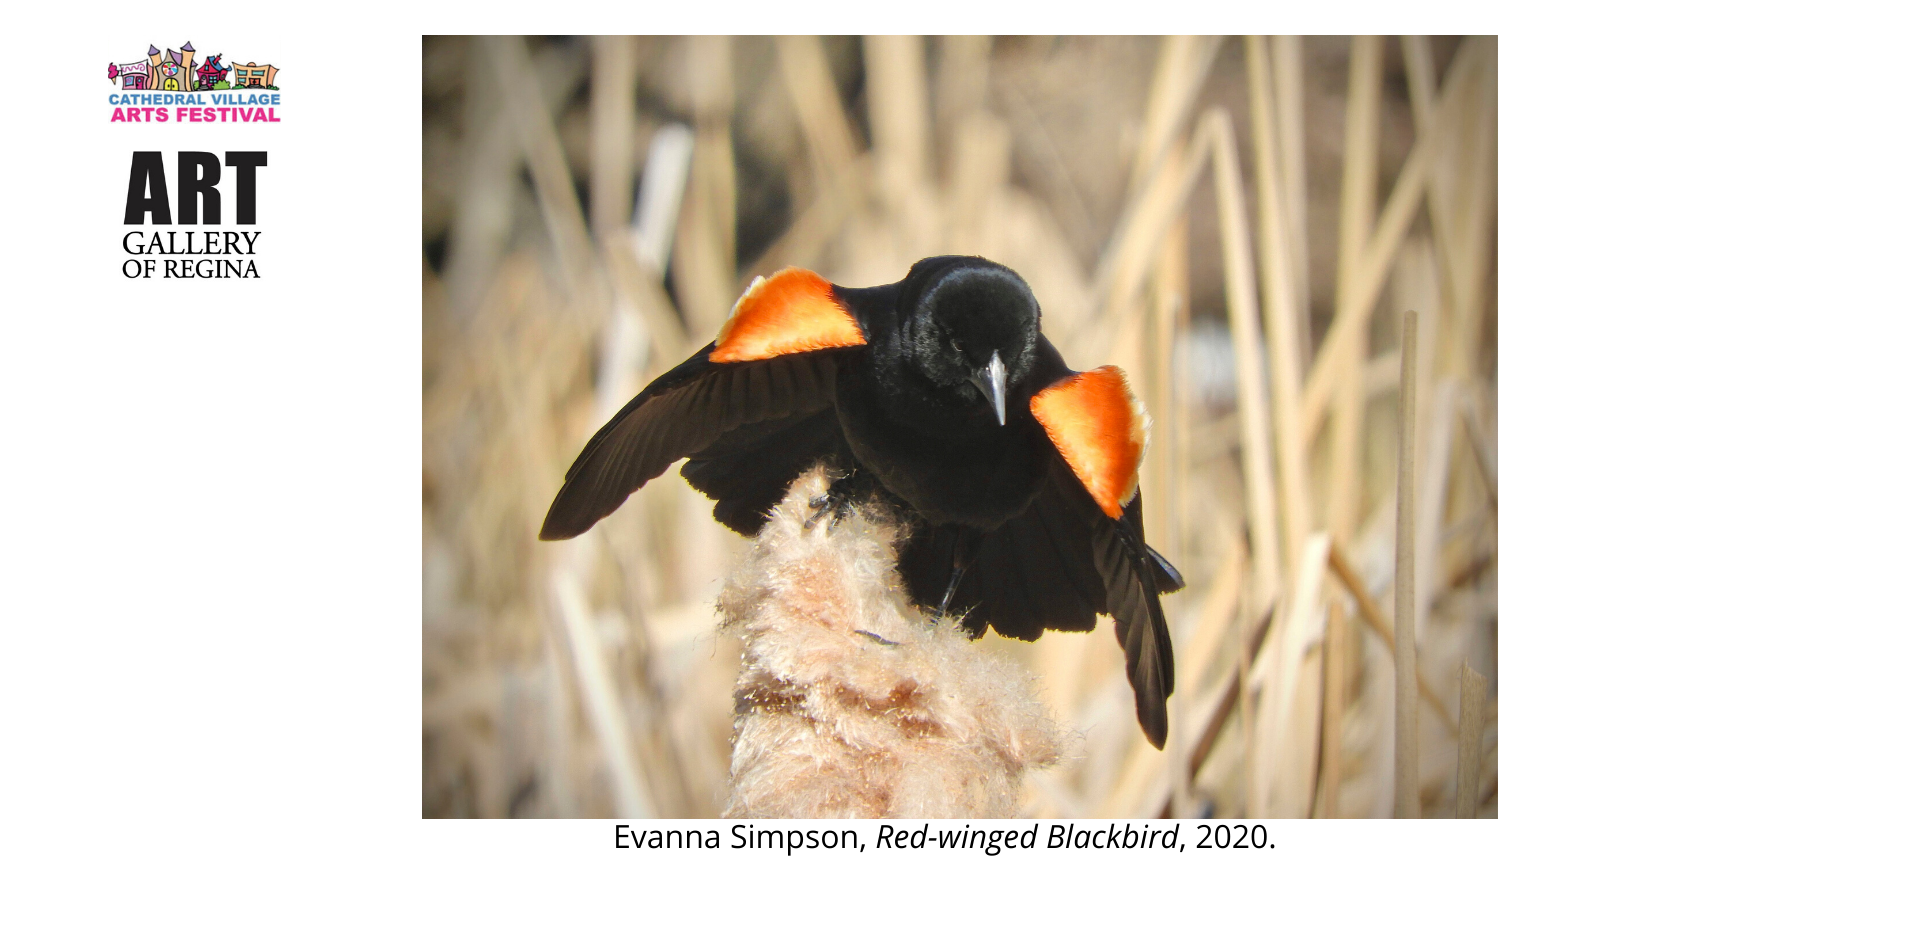 Evanna Simpson, Red-winged Blackbird, 2020.